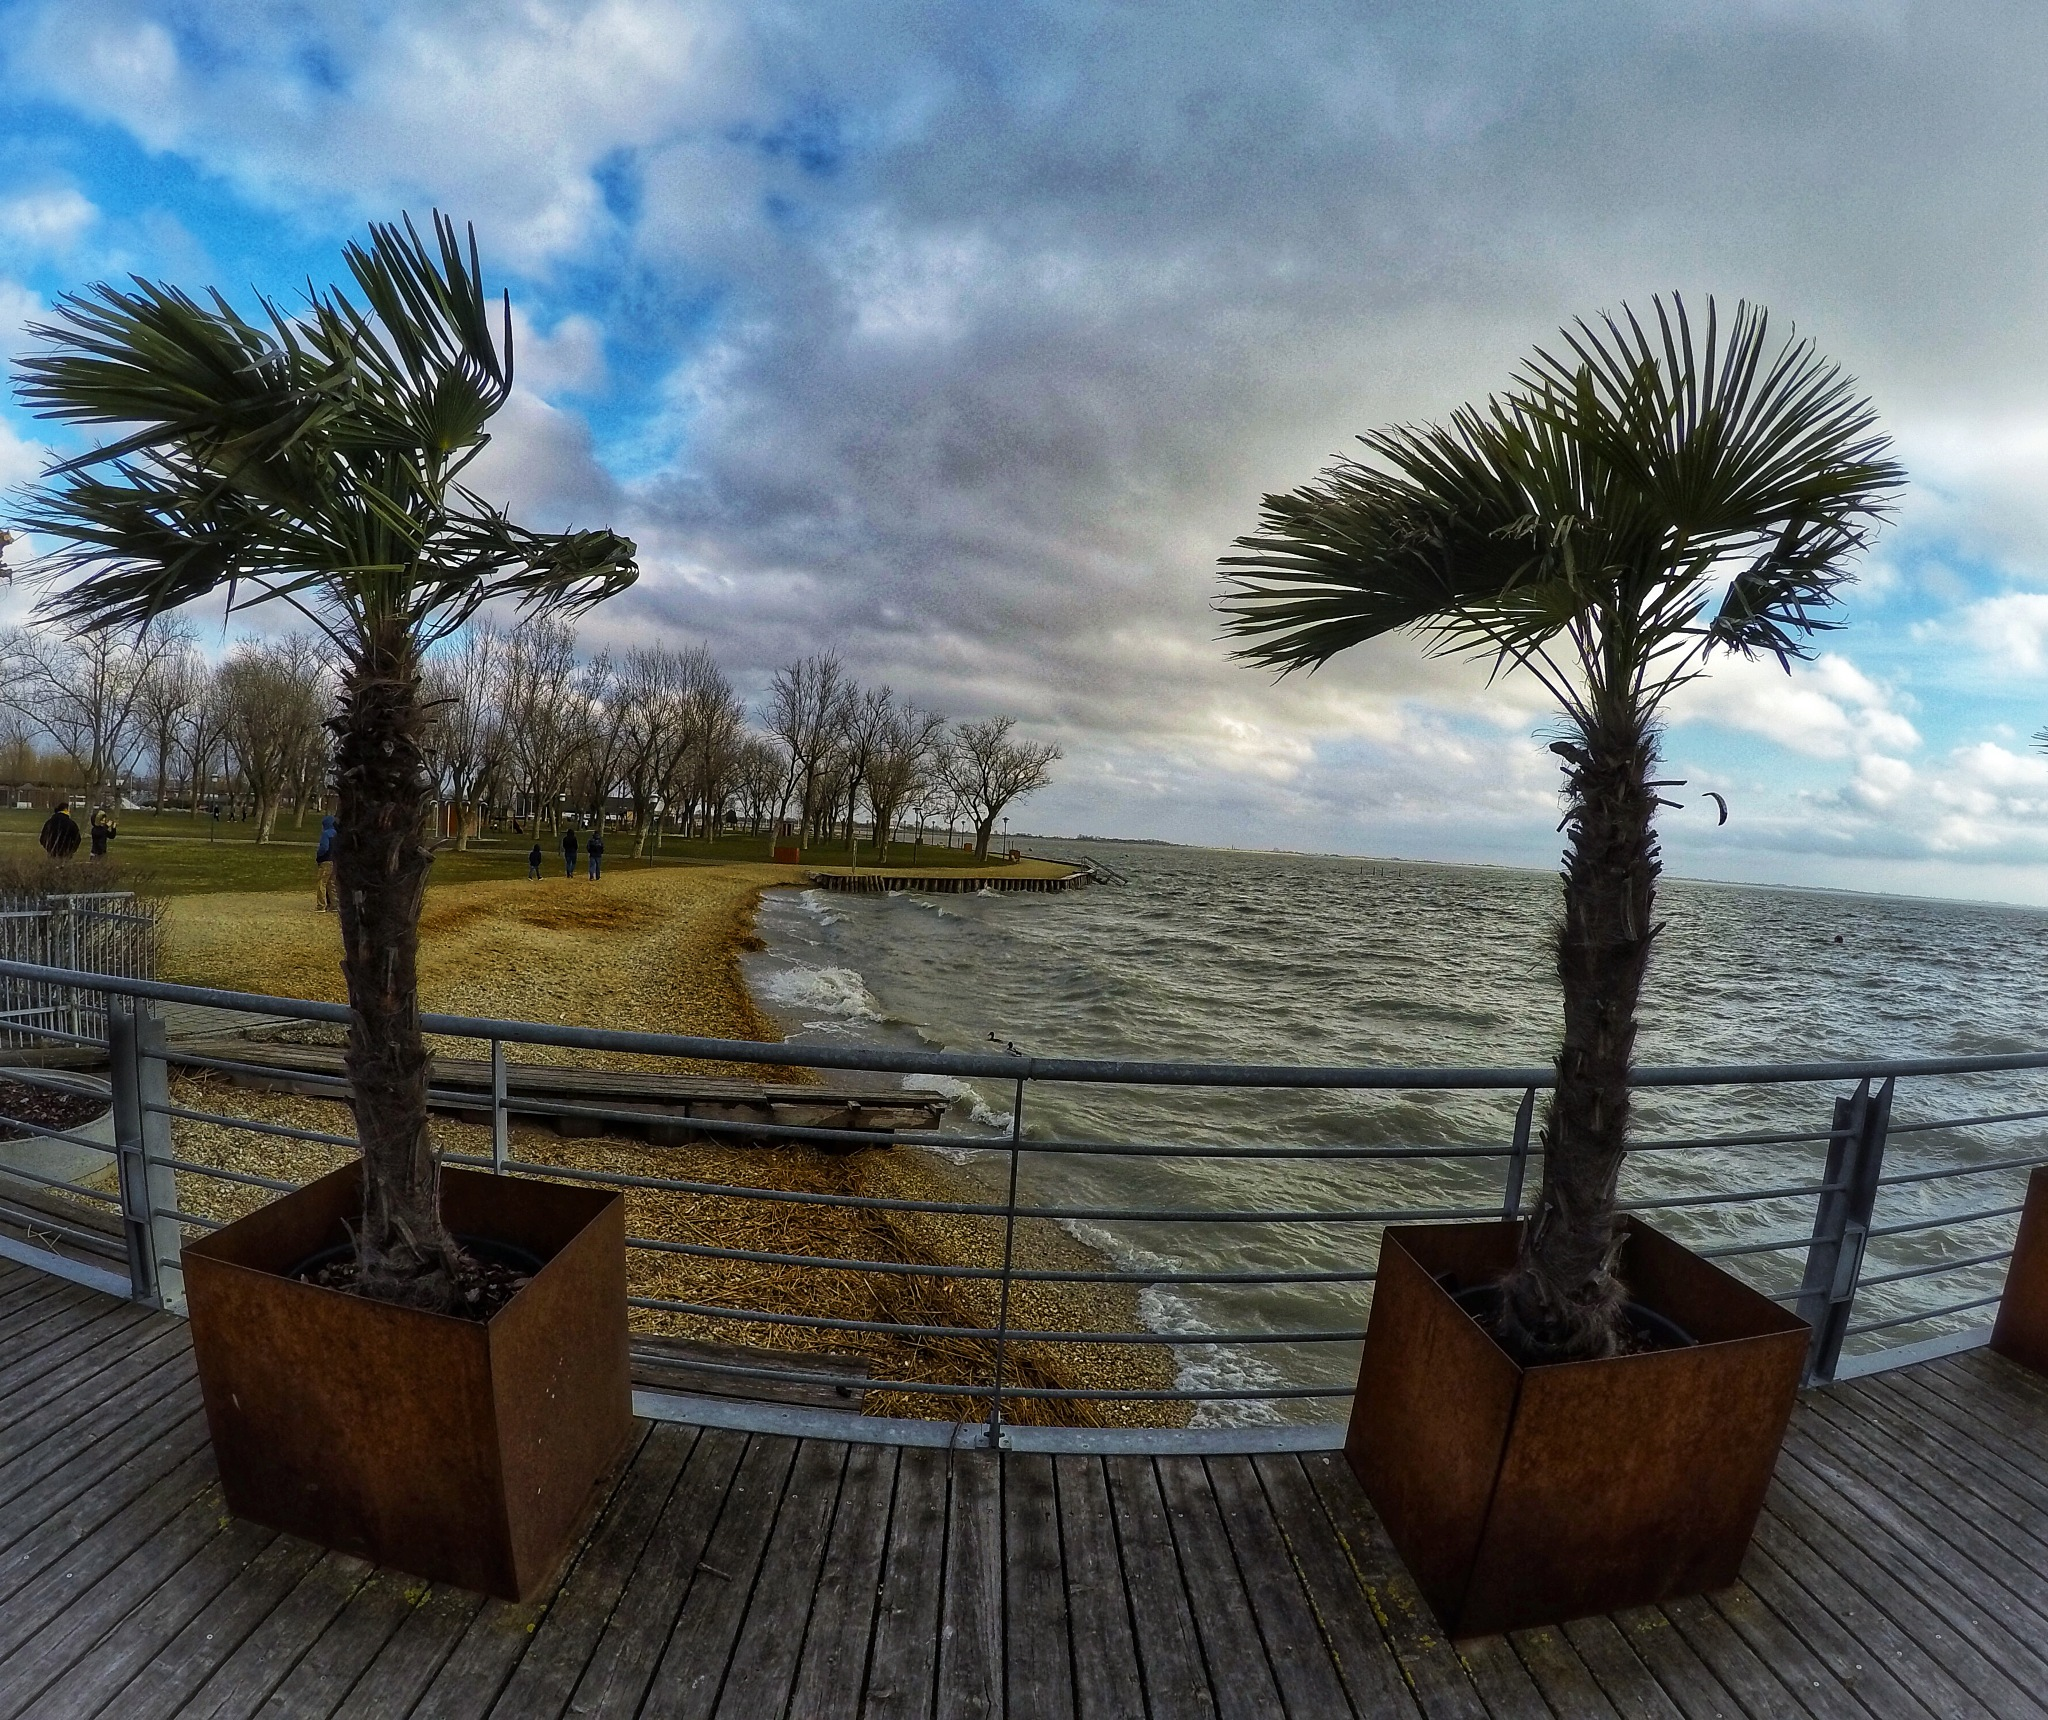 Neusiedler See by FaRsHaD